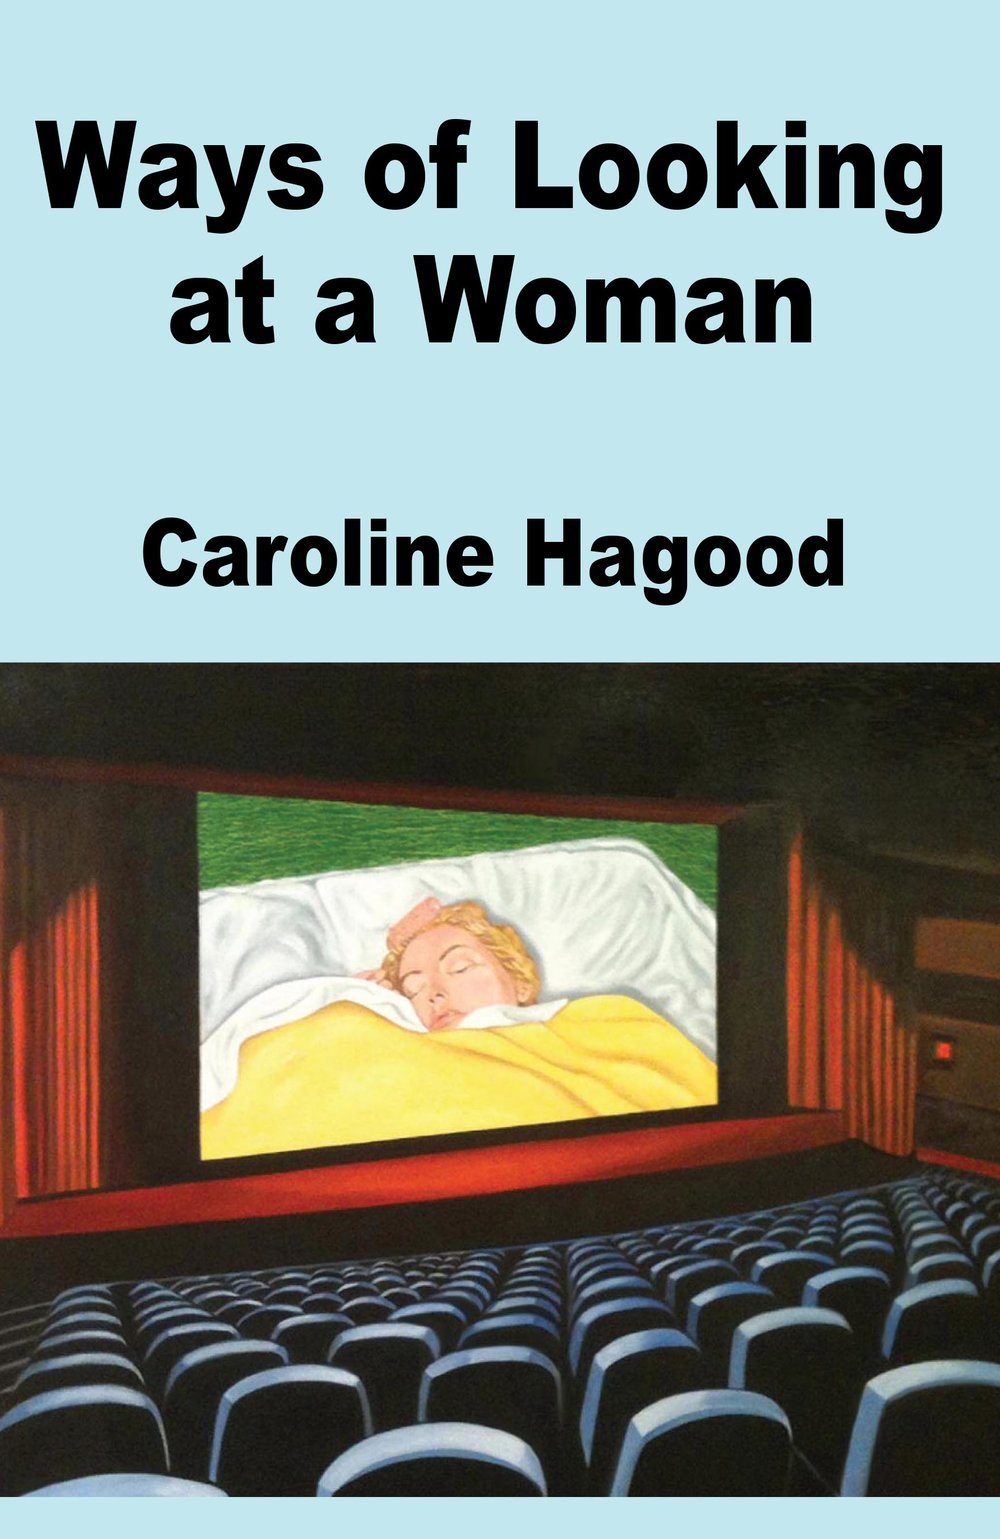 "- In Ways of Looking at a Woman, a book-length essay that interweaves memoir with film and literary history, Caroline Hagood assumes the role of detective to ask, what is a ""woman,"" ""mother,"" and ""writer""? By turns smart, funny, and poignant, Ways of Looking at a Woman is a profound meditation on the many mysterious layers that make up both a book and a person.""Caroline Hagood's Ways of Looking at a Woman is a profoundly unique and honest piece of work, somehow executed with an astonishing lack of ego. She will break your heart with her naked sincerity; a masterful, singular writer who sheds light with every page.""—Mary-Louise Parker""This book is for the poetry lovers whose brains have gone fractured after childbirth, fractured by love and focus and television and books, every influence jostling for precious space. Is this a poem? Is it a memoir? Is it a book on art and motherhood and love? Yes. I'll shelve it next to Maggie Nelson, on the shelf marked Necessary.""—Emma Straub""Caroline Hagood's critical eye is somehow both cool and passionate, and she uses it freely, beautifully, to gift readers a riveting portrait of a mind at work. Referencing high and low culture, family, academic syllabi, and most importantly, her body, Hagood has made something entirely new and all her own.""—Elisa Albert"